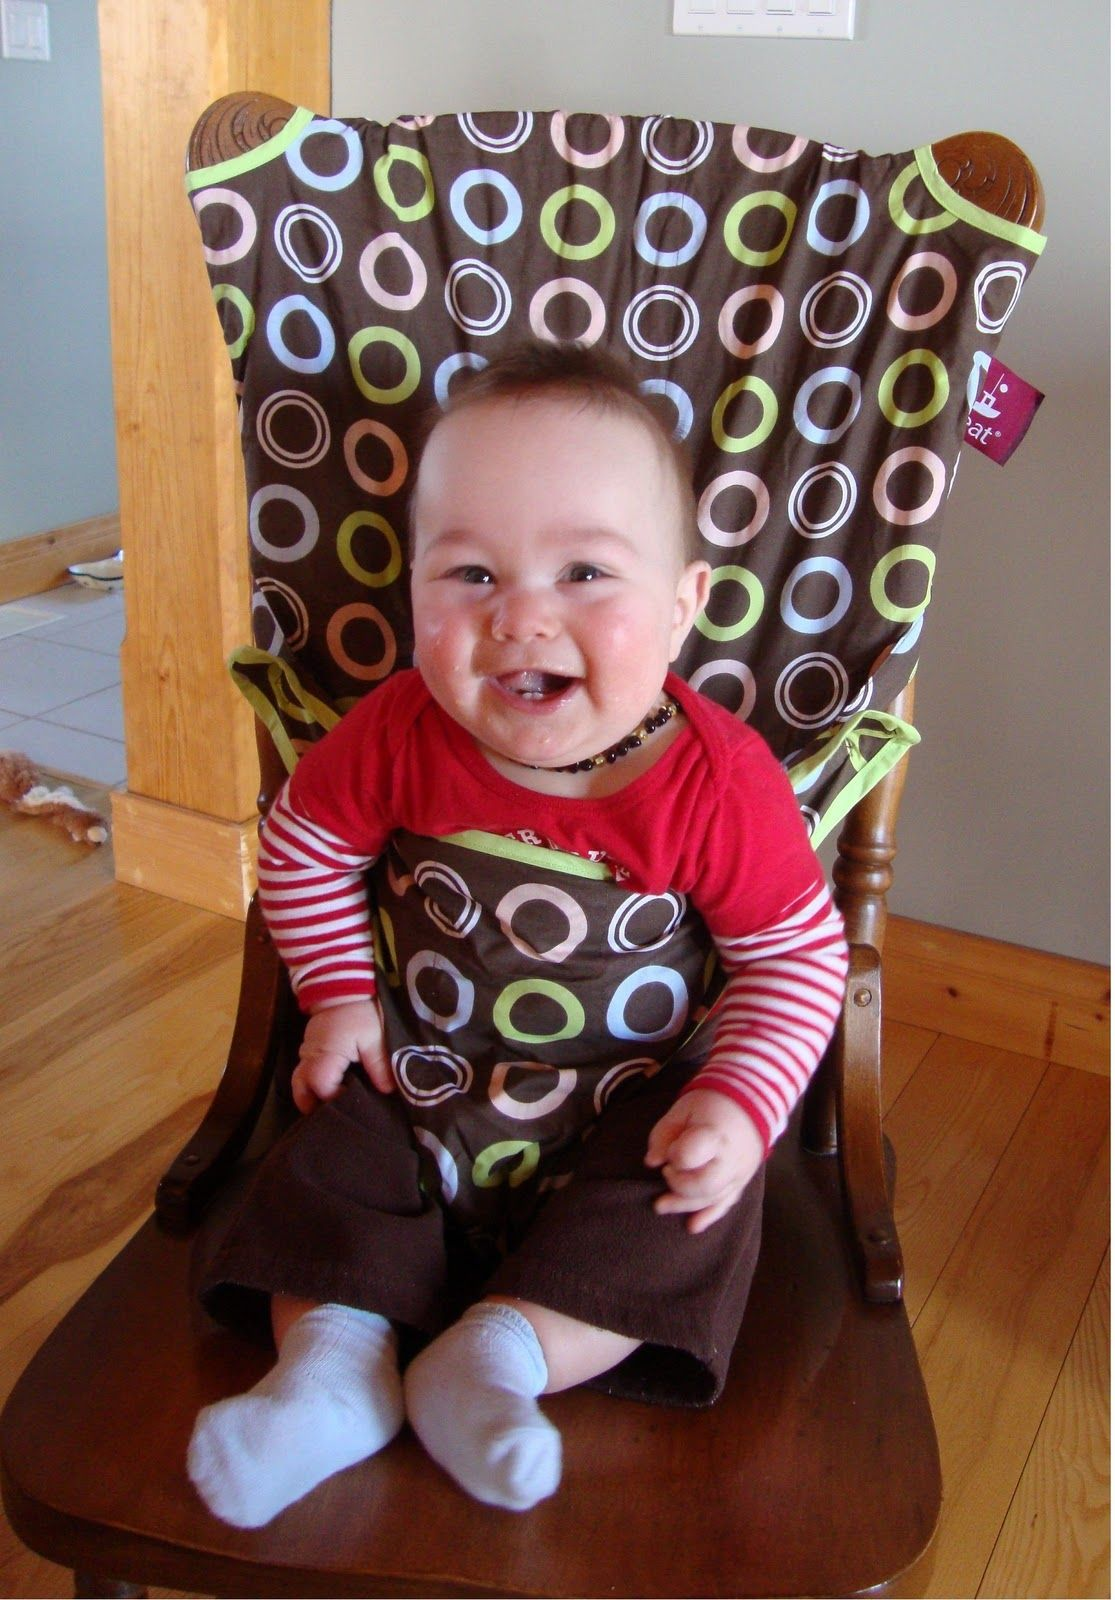 Cloth Portable High Chair Desk Costco Review Totseat Coupon Code Babies Perfect For When You Are On The Go Affordable Easily Adjustable Washes Up Great Comes With Carrying Case